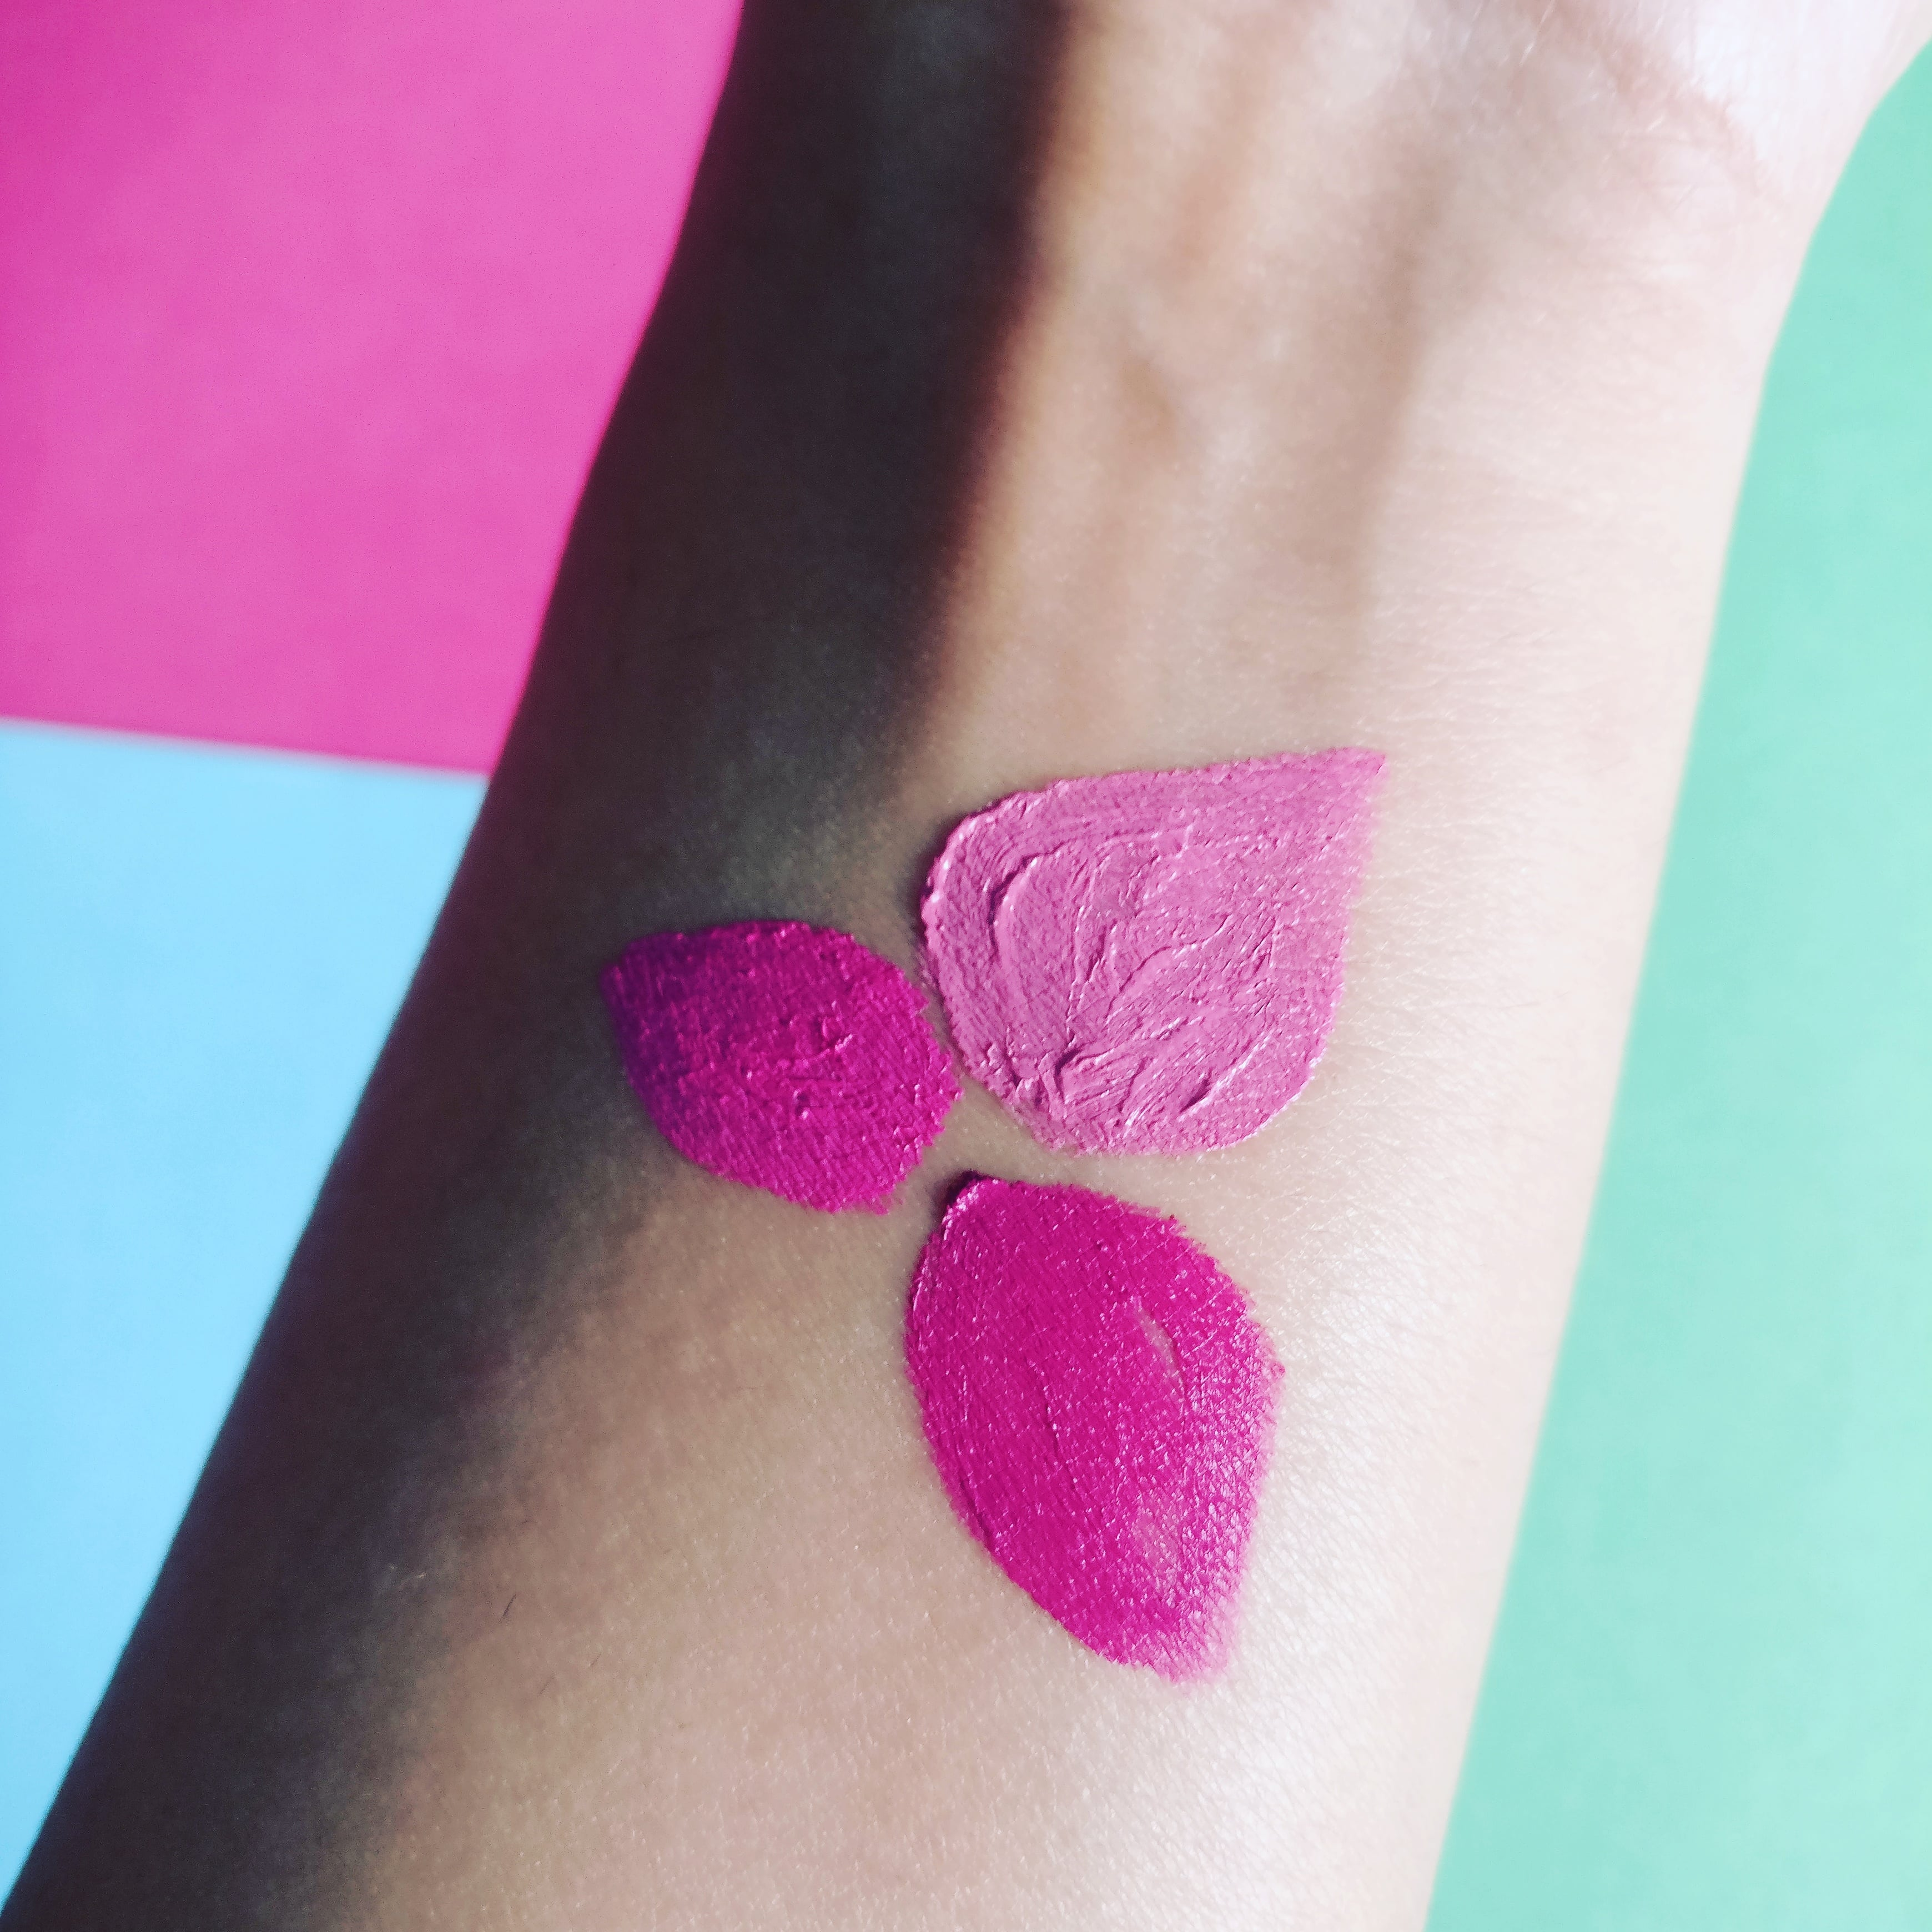 The Body Shop Matte Lip Liquid Review